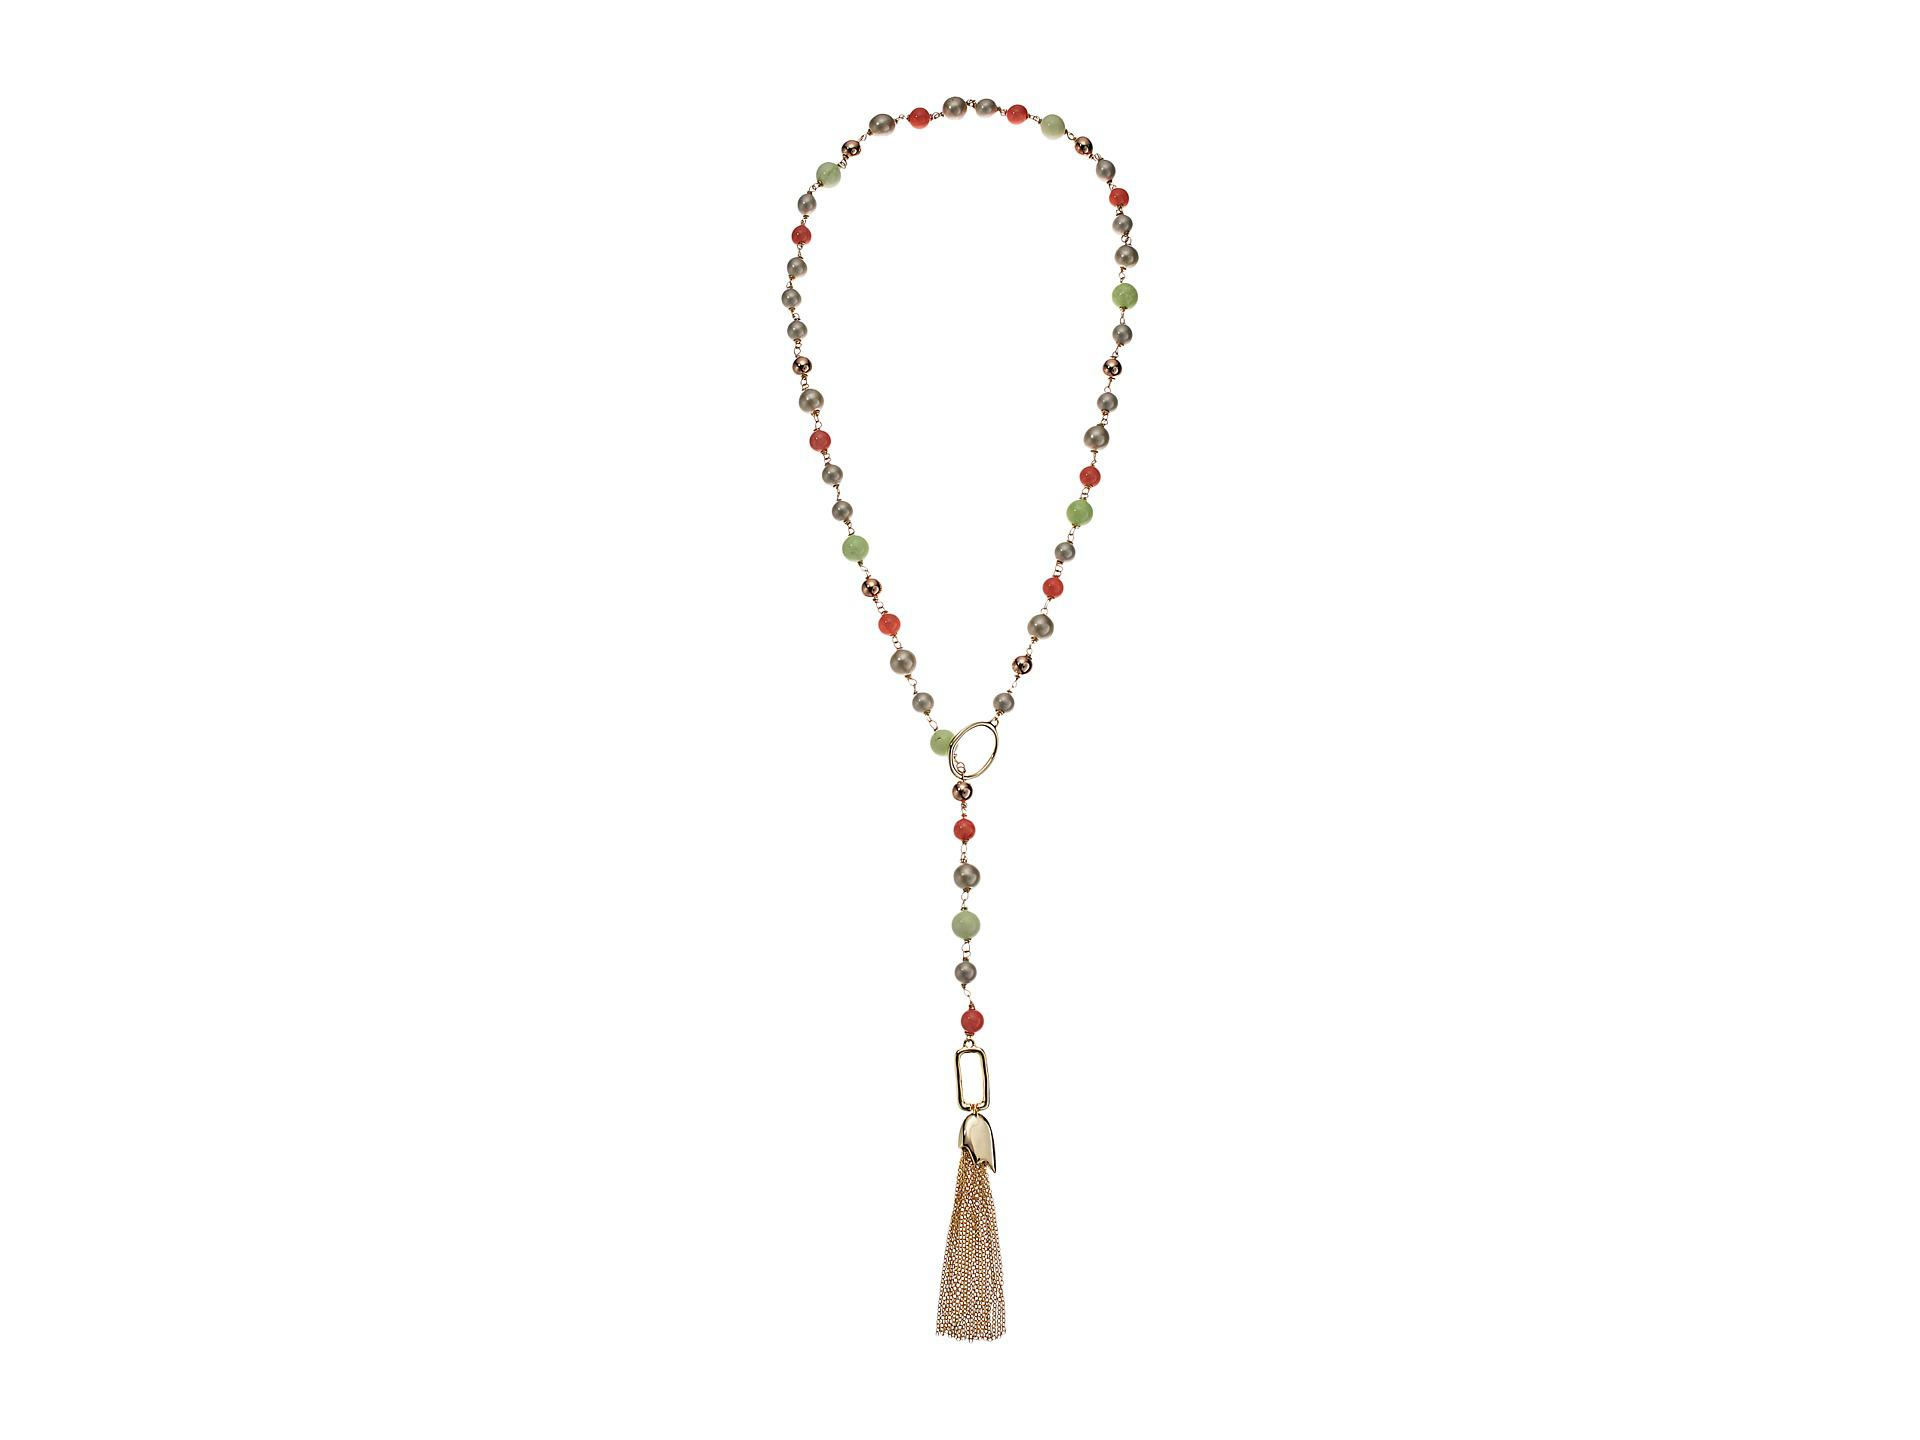 Alexis Bittar Beaded Lariat Tassel Necklace UIdnAQrXIw